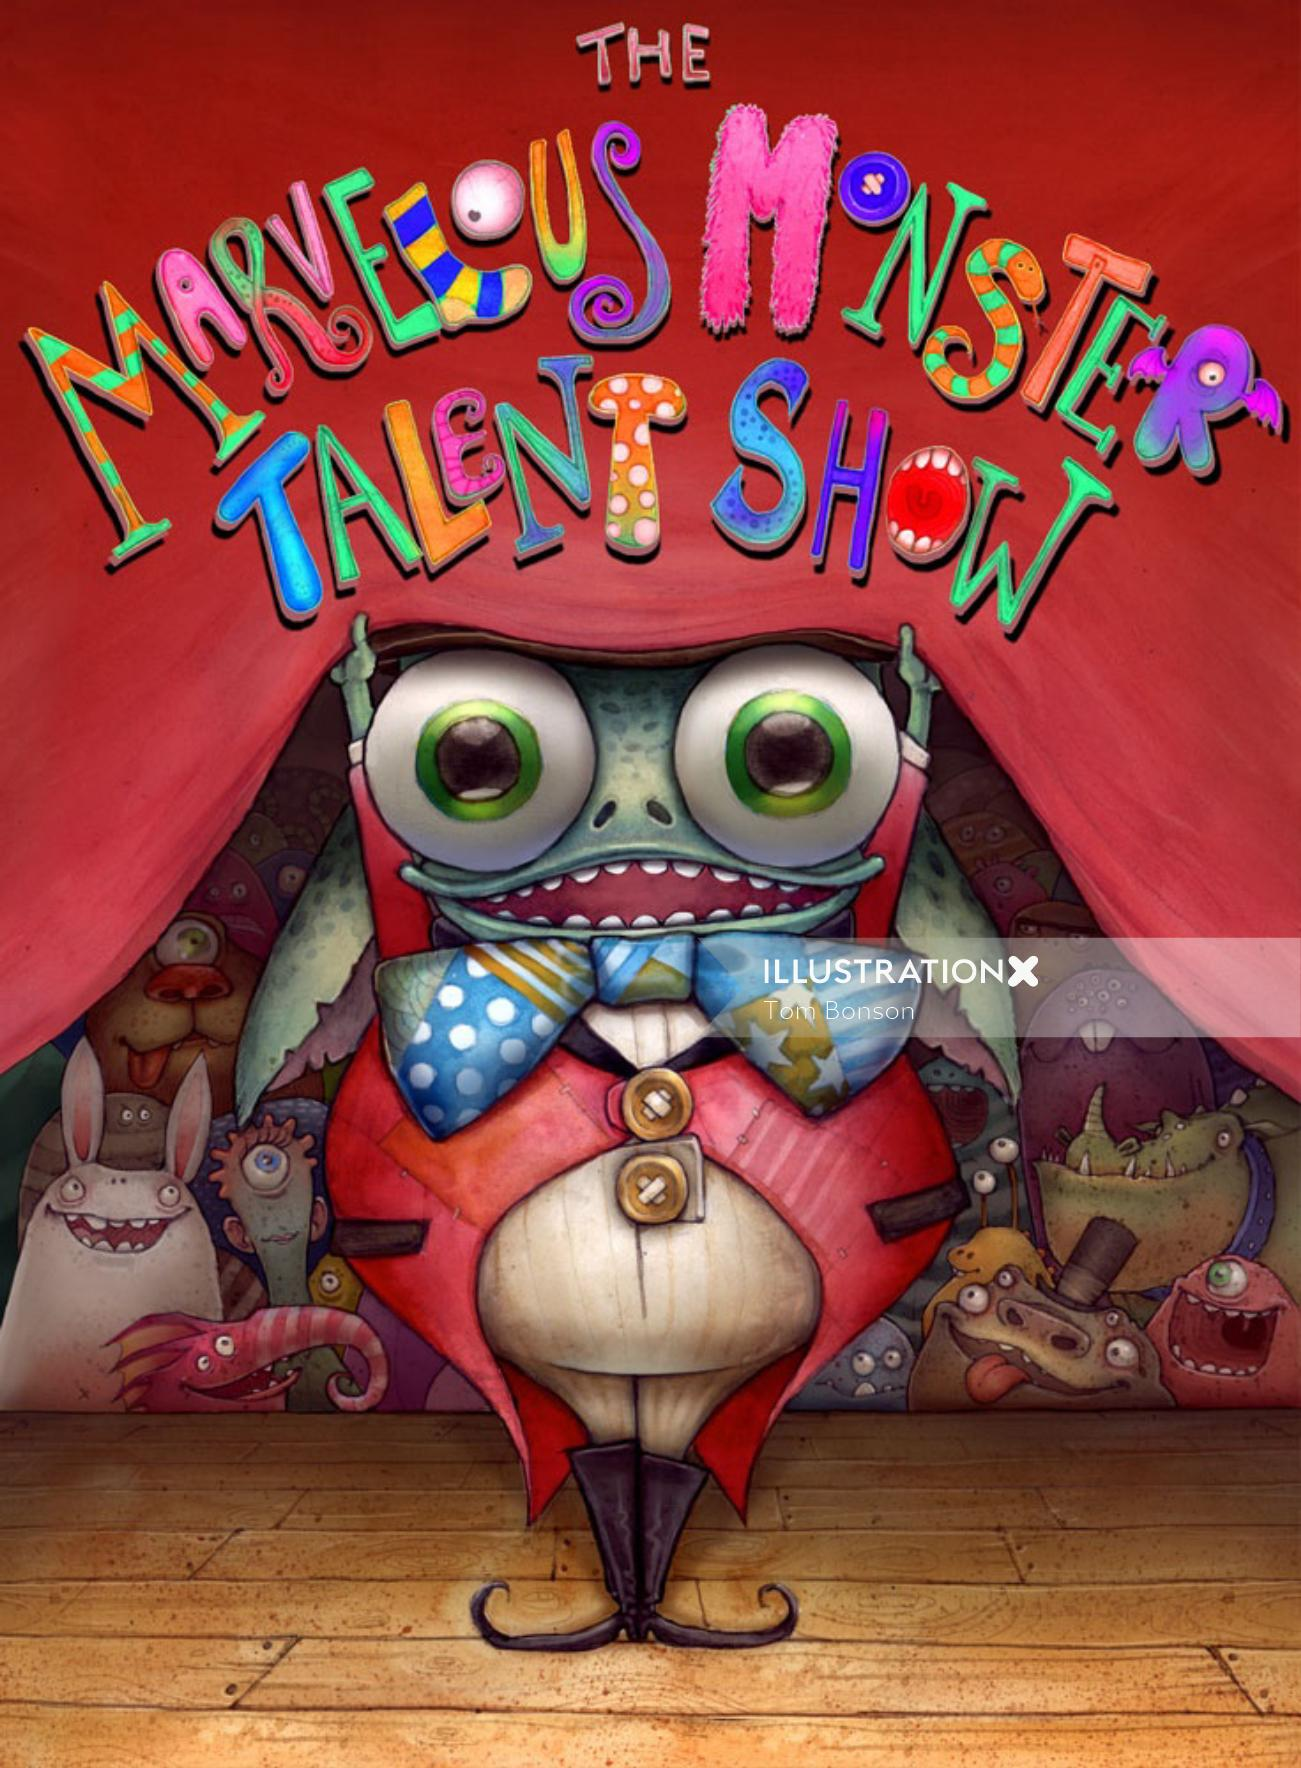 Marvellous Monster Talent Show Book Cover